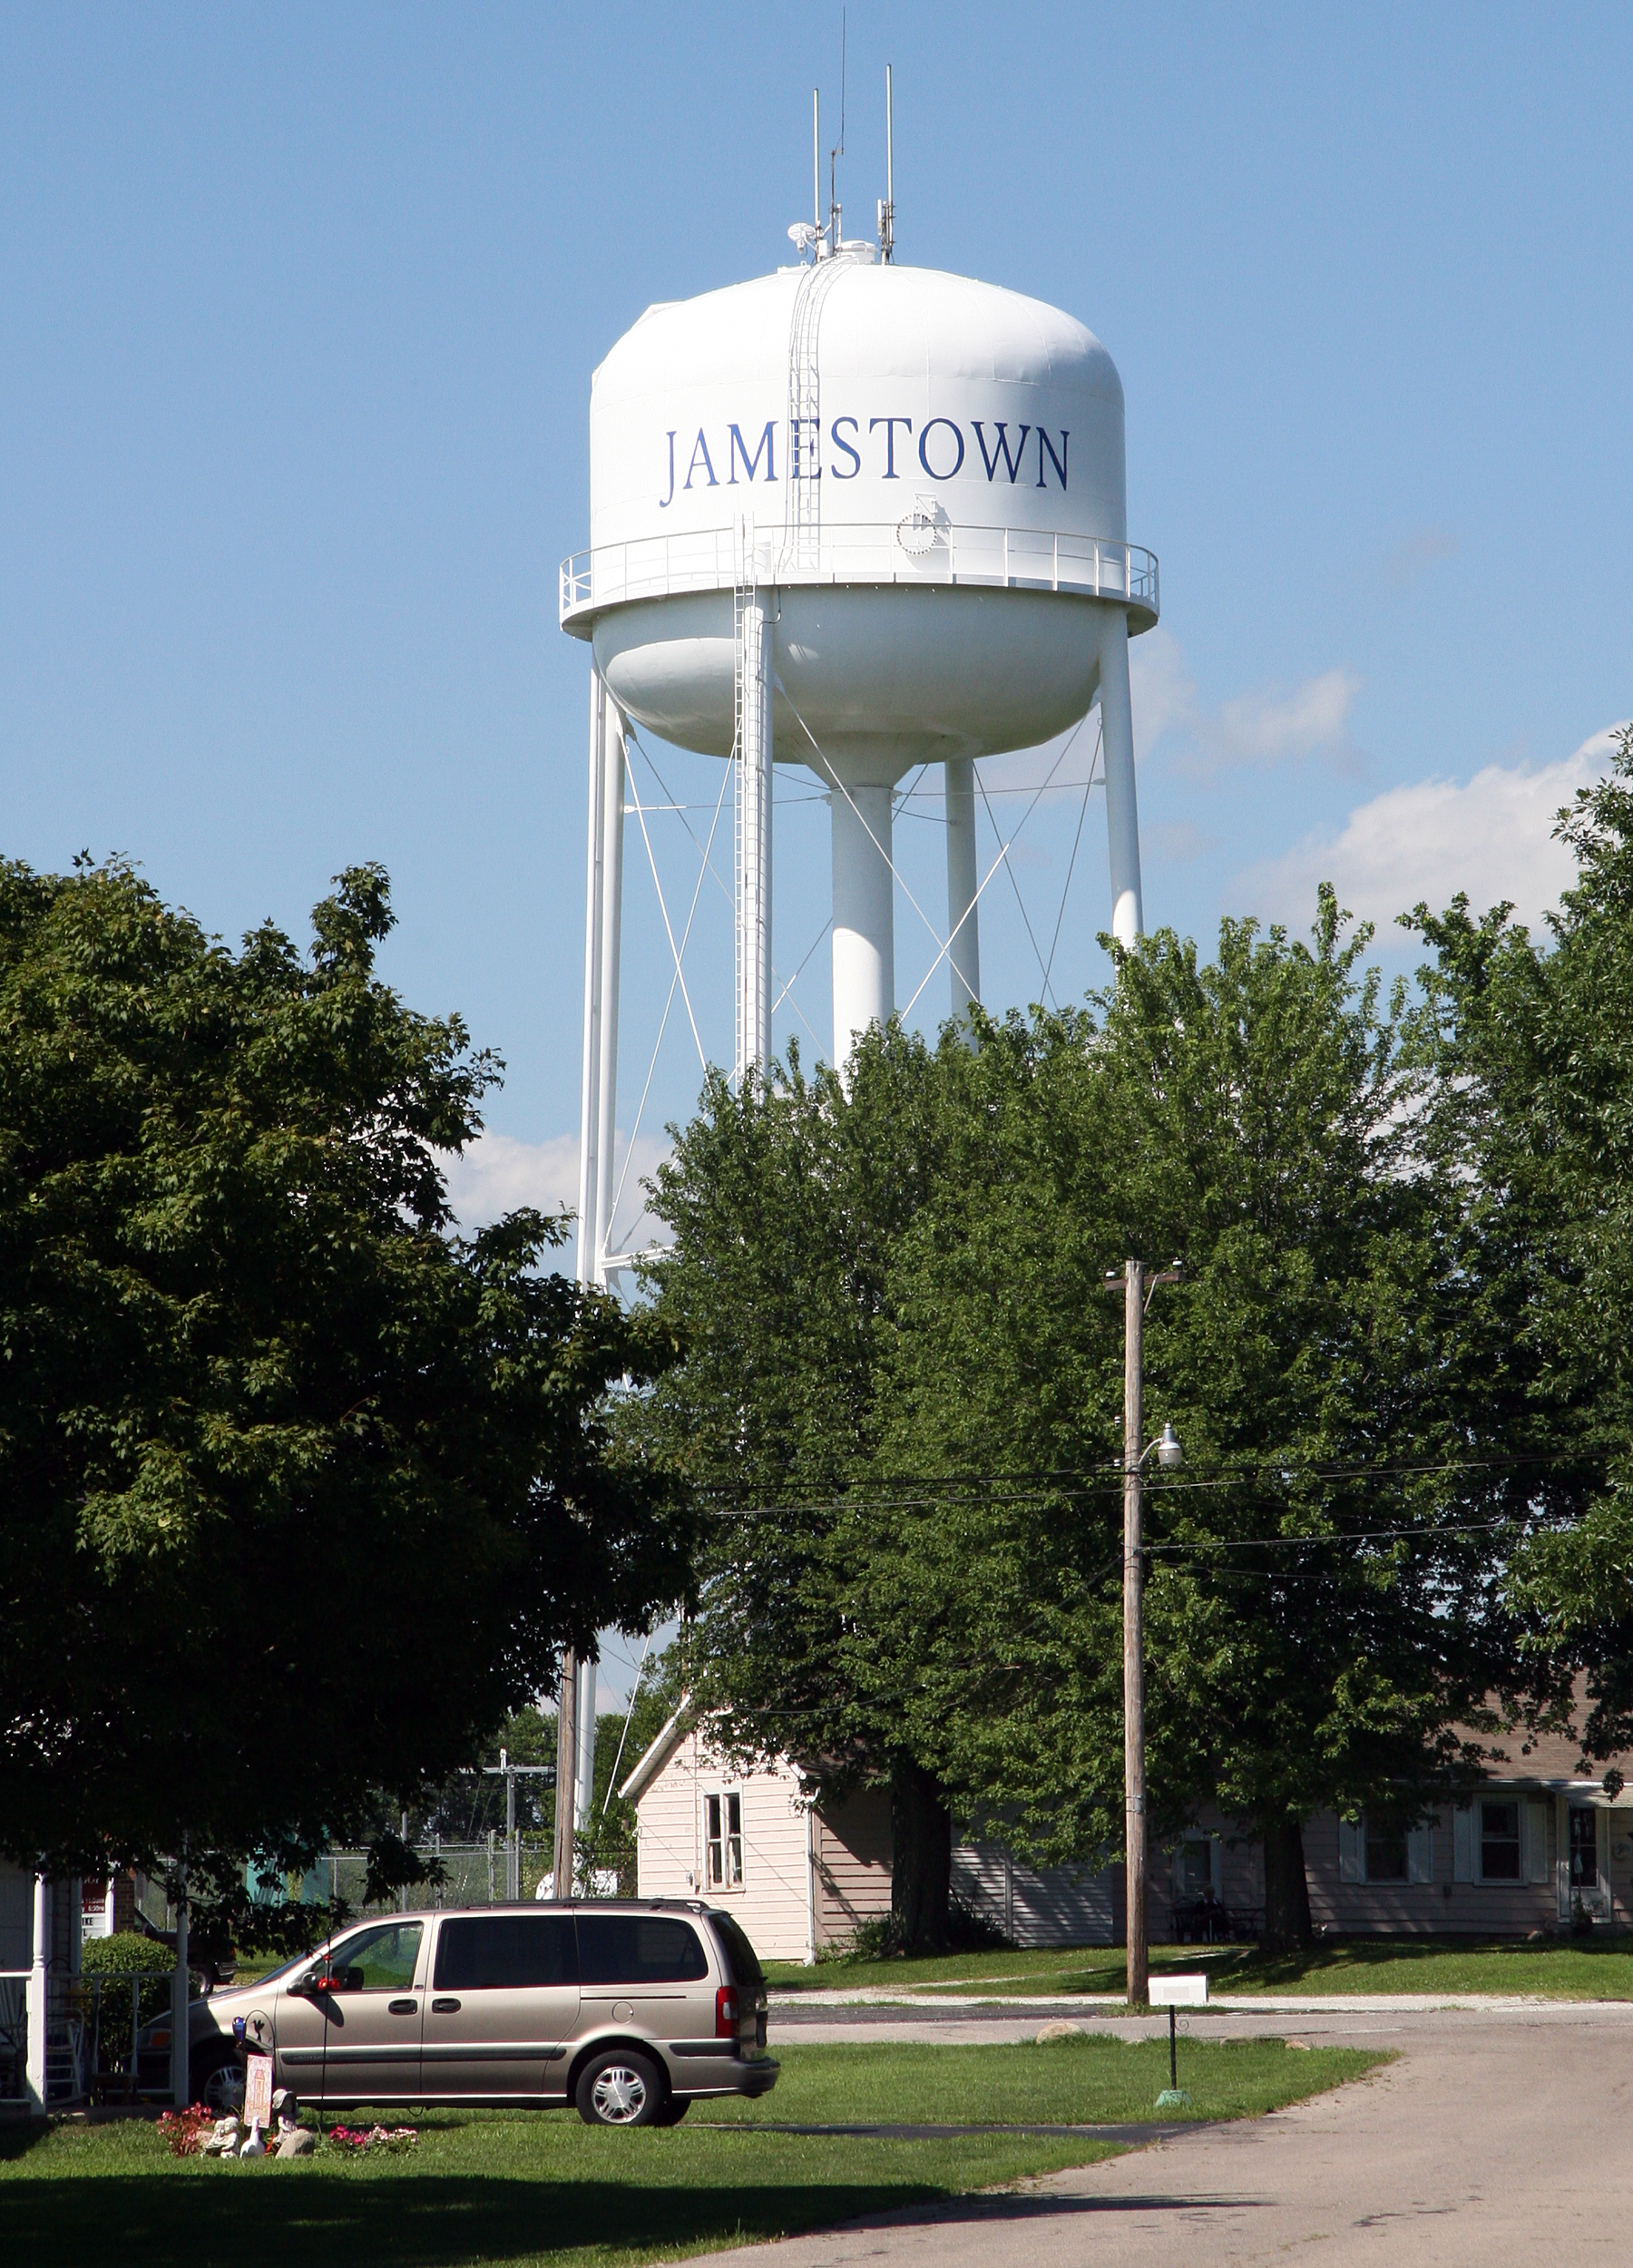 Indiana boone county jamestown - File Jamestown Indiana Water Tower Png